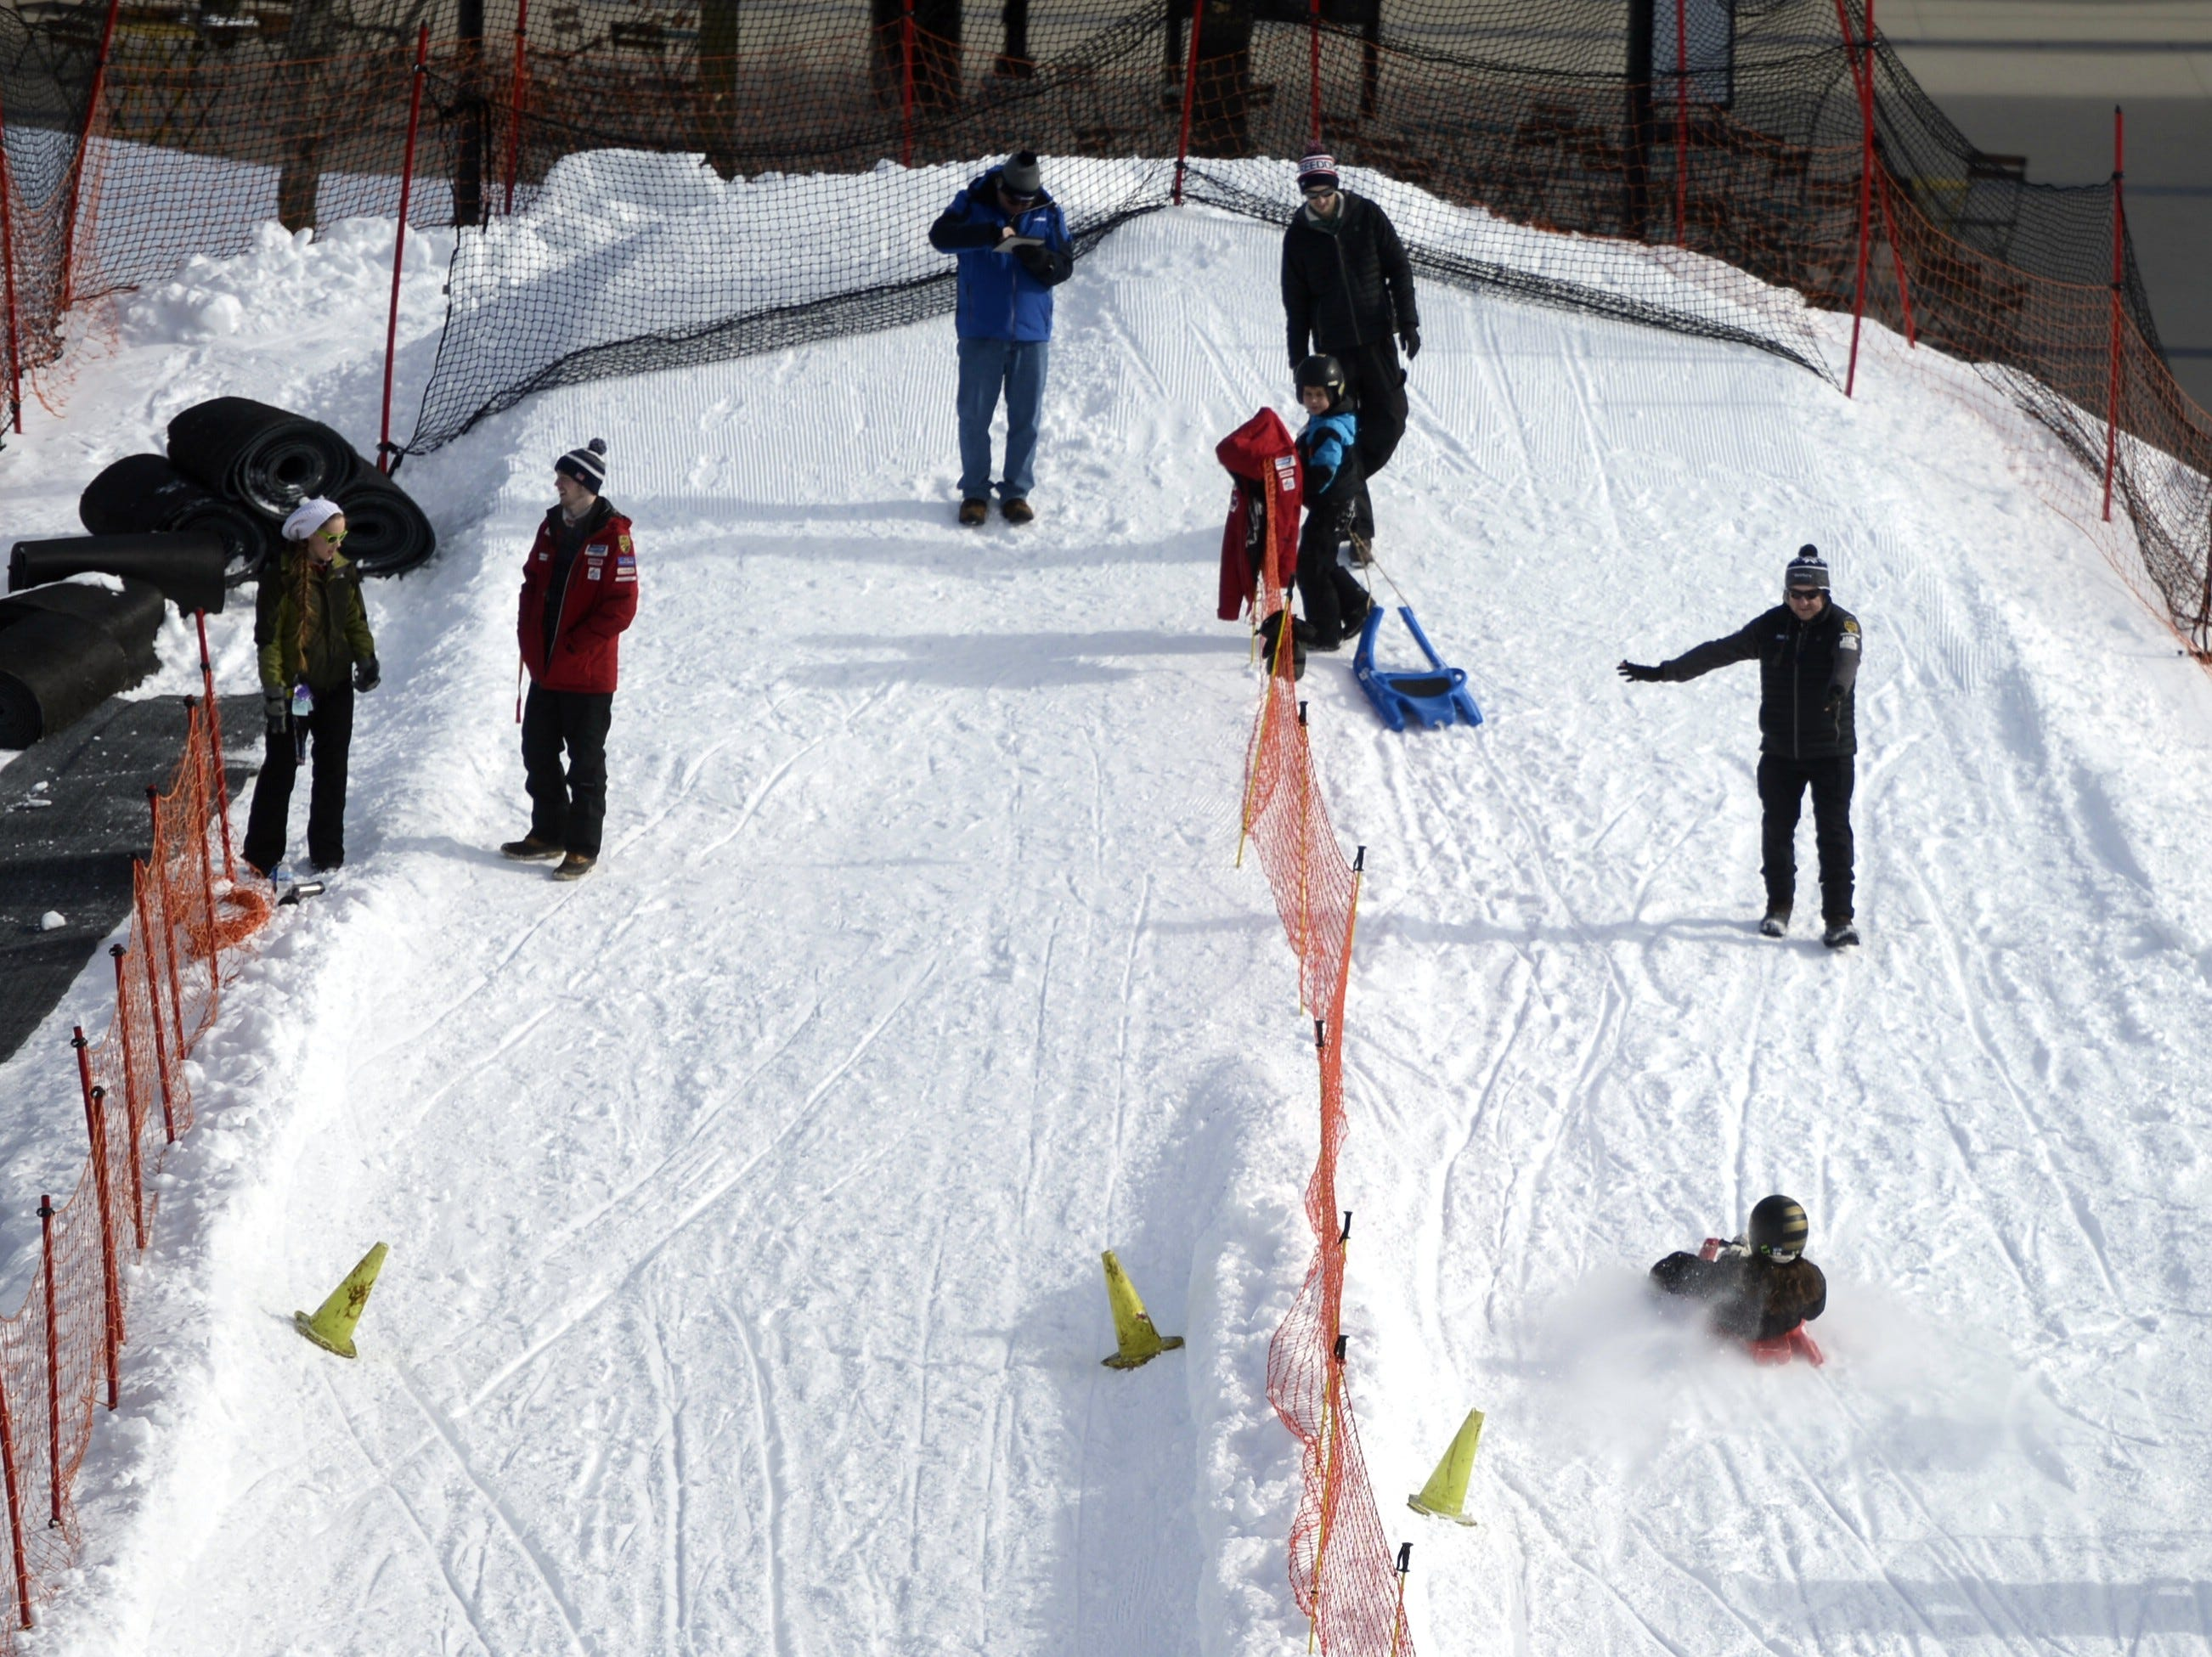 The finish line on the luge course at the Titletown Winter Games on Saturday, Feb. 16, 2019.